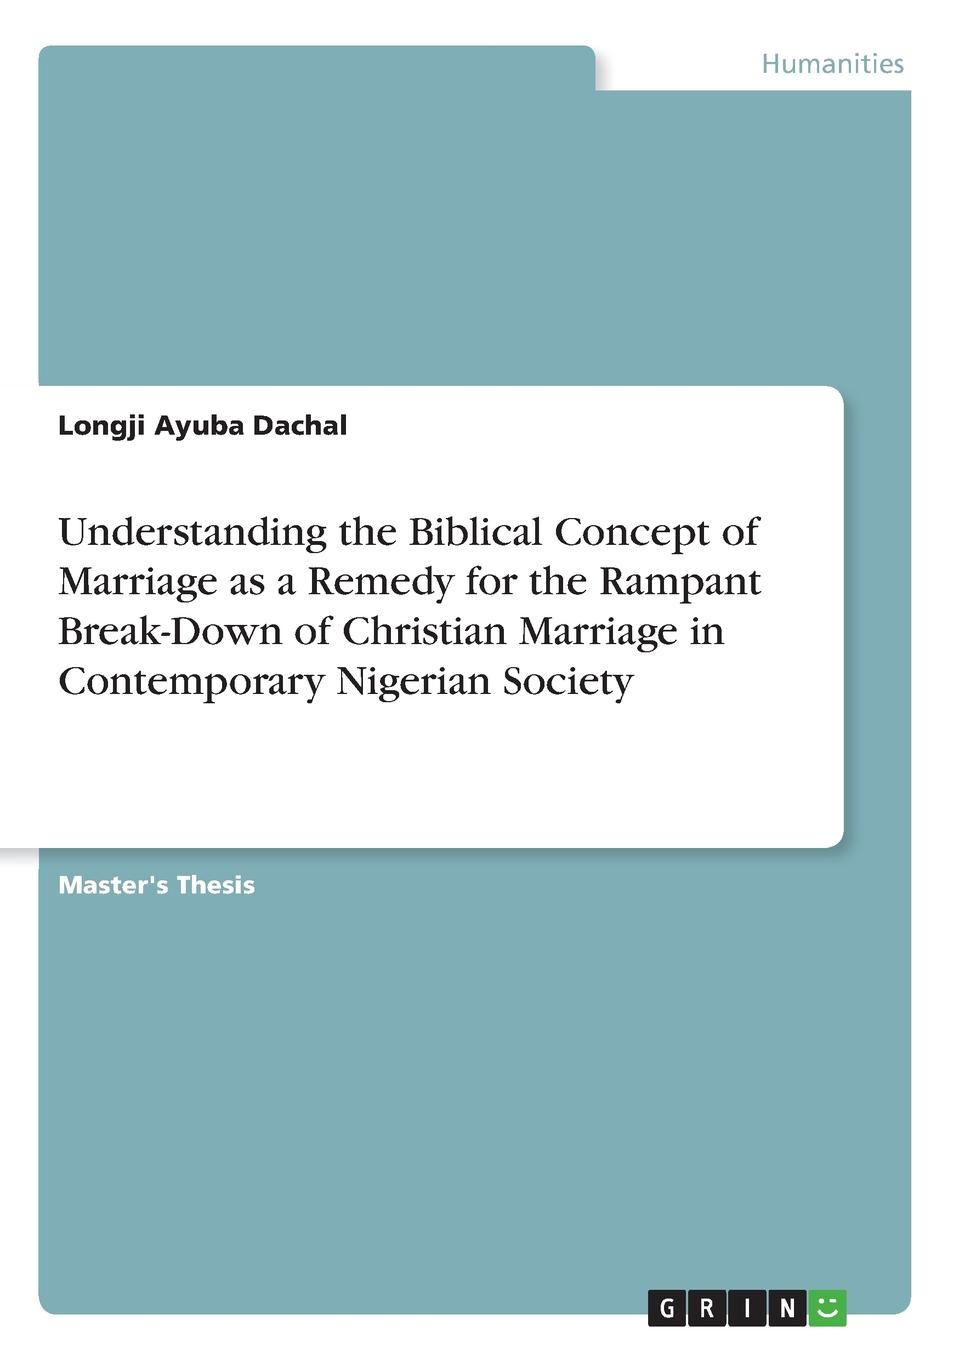 Longji Ayuba Dachal Understanding the Biblical Concept of Marriage as a Remedy for the Rampant Break-Down of Christian Marriage in Contemporary Nigerian Society arranged marriage